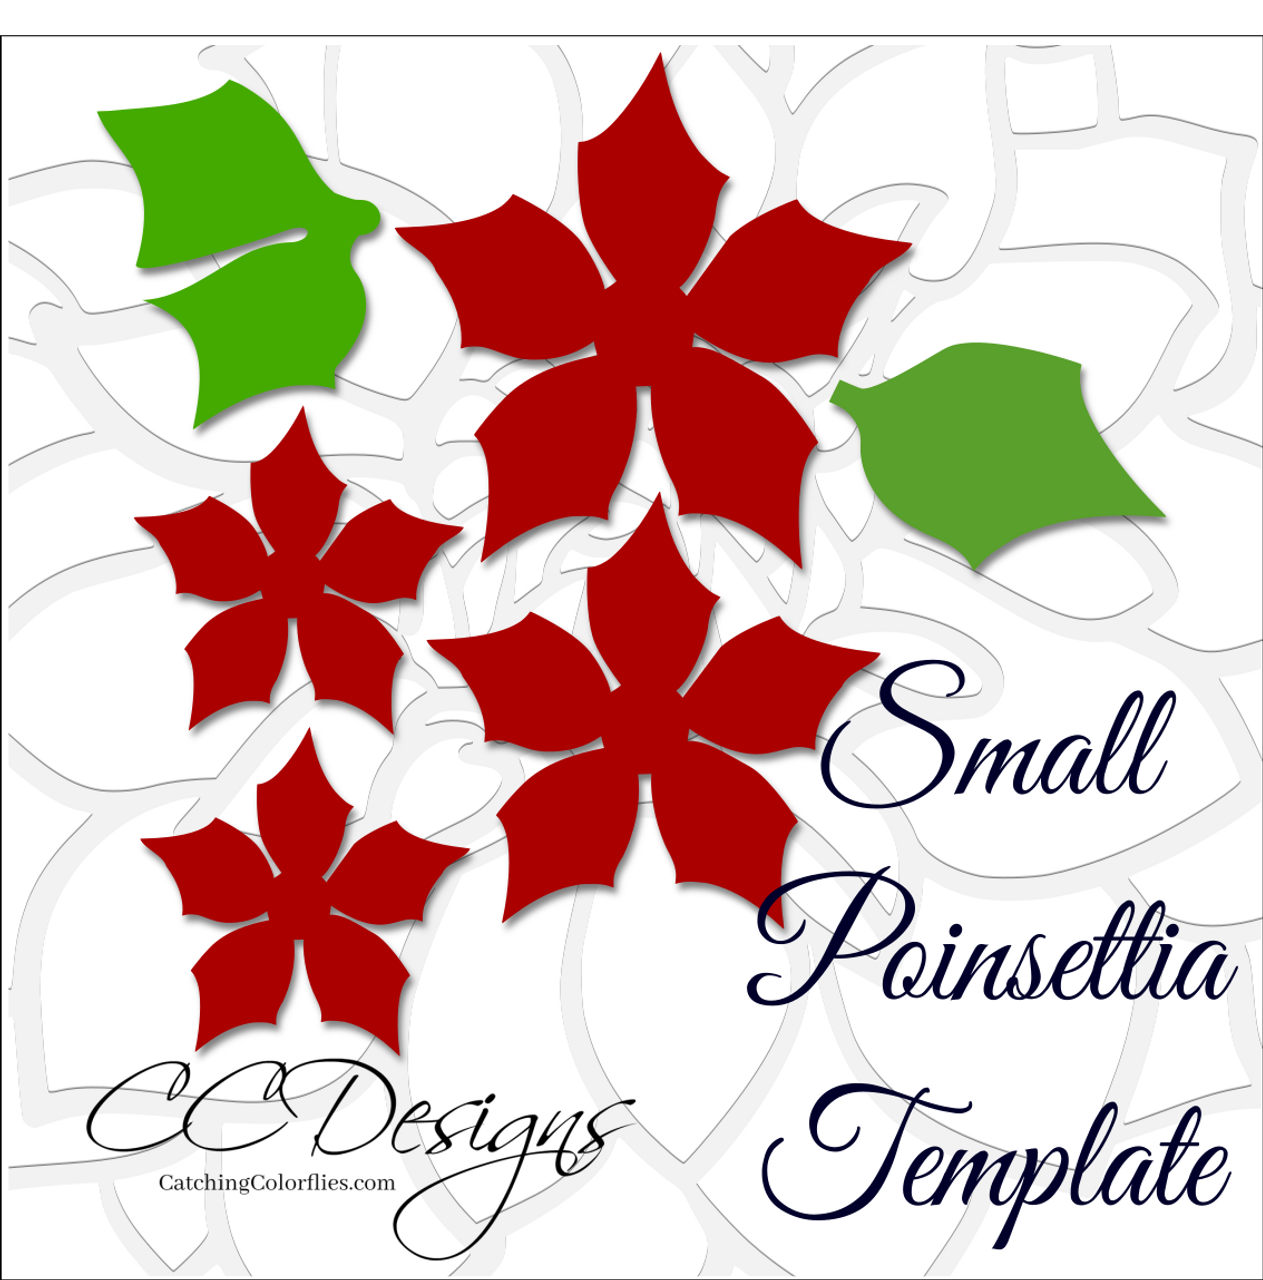 small poinsettia diy flower templates catching colorflies